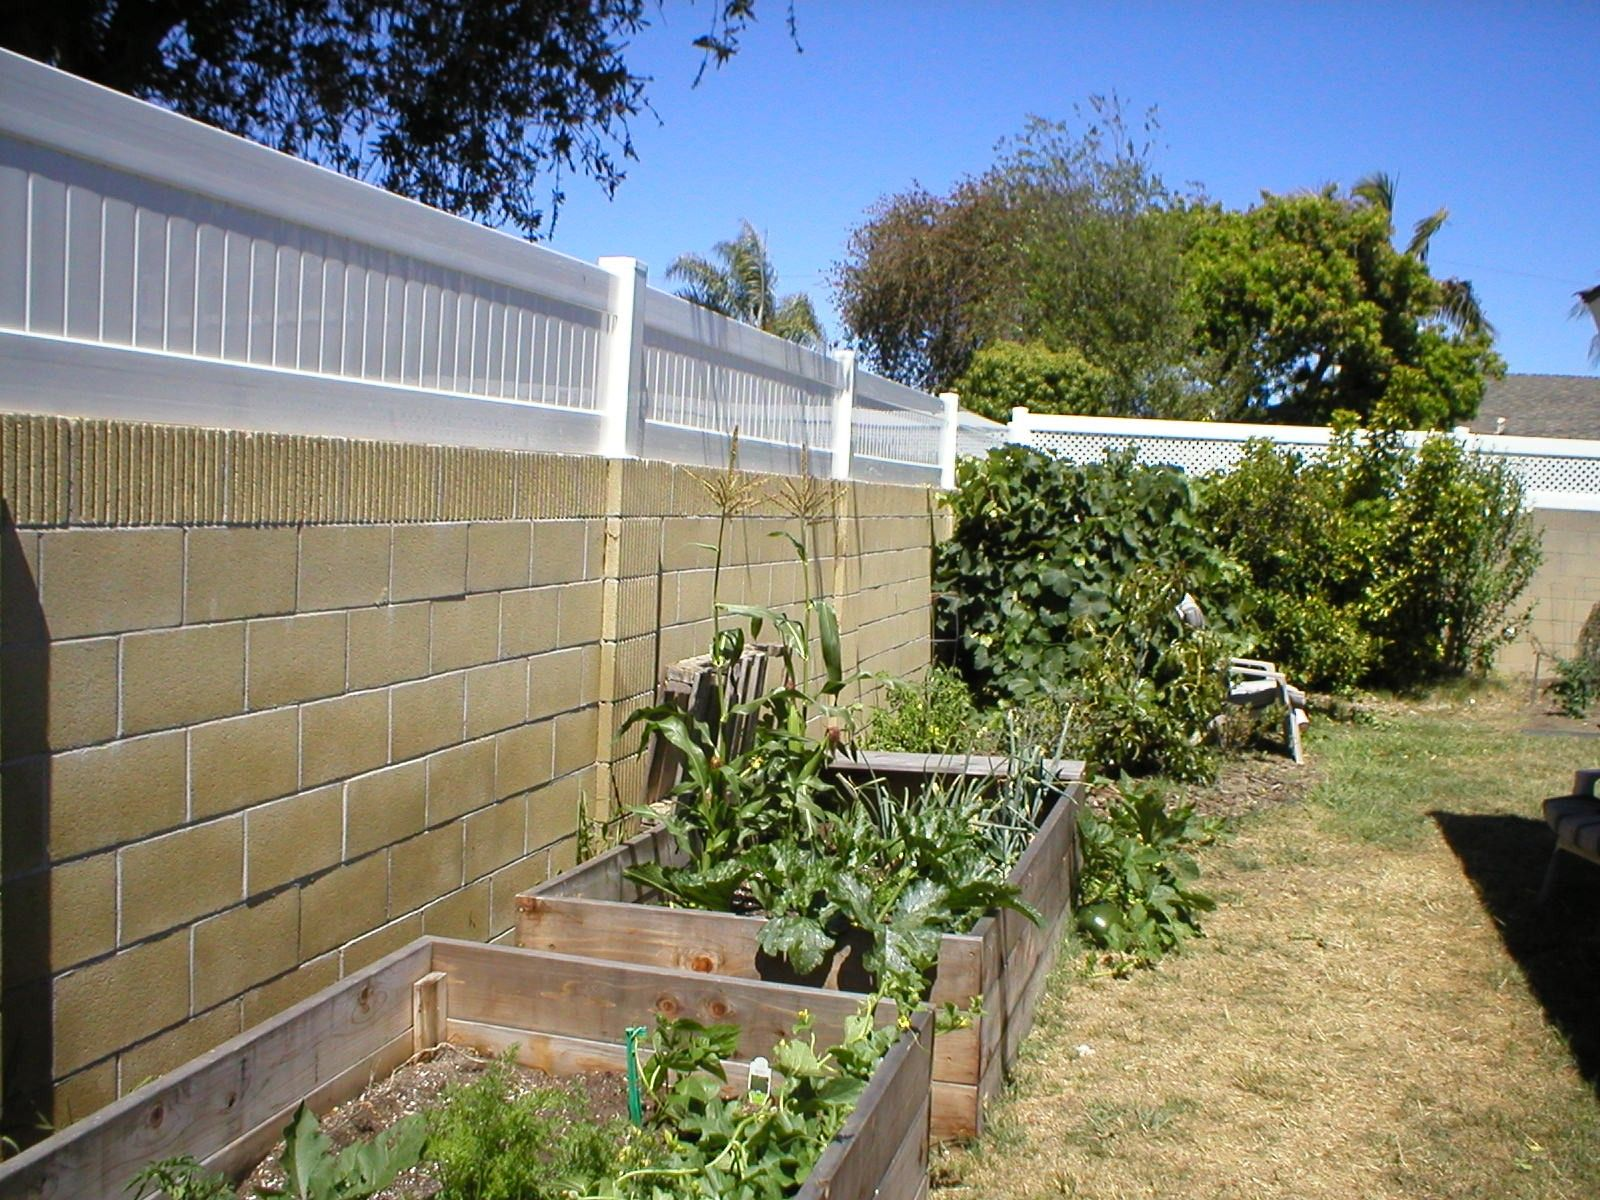 privacy fence ideas on top of block walls